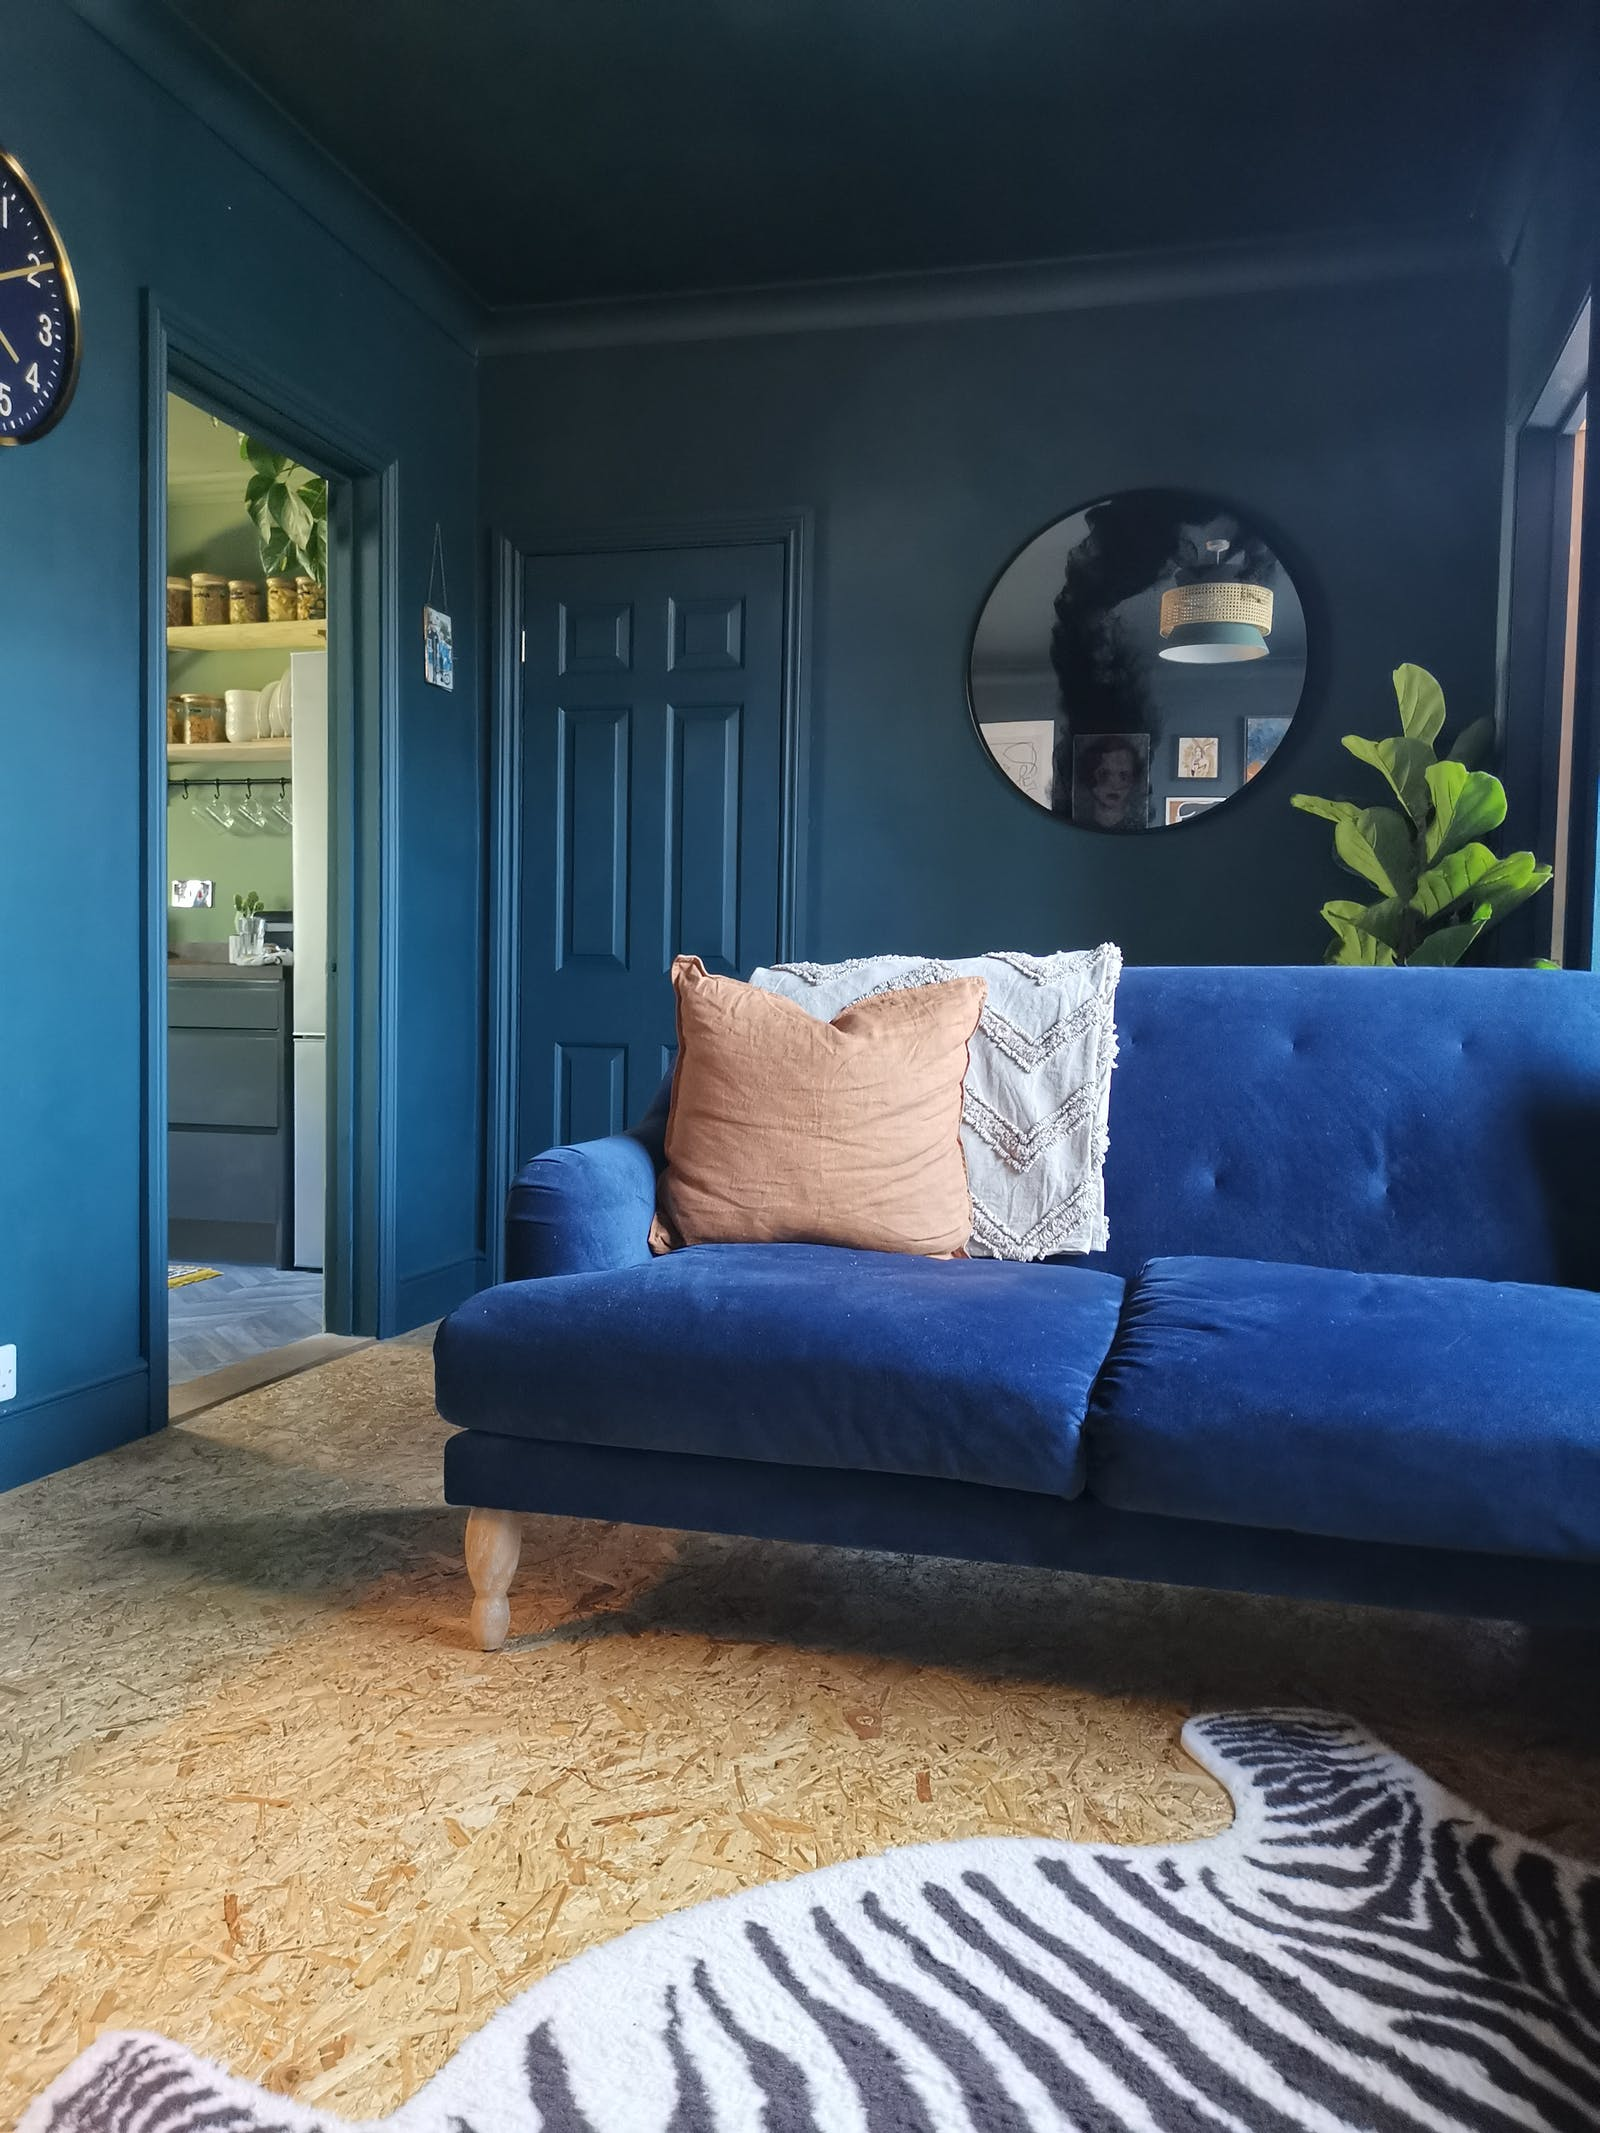 Living room painted in dark blue with a dark blue velvet sofa